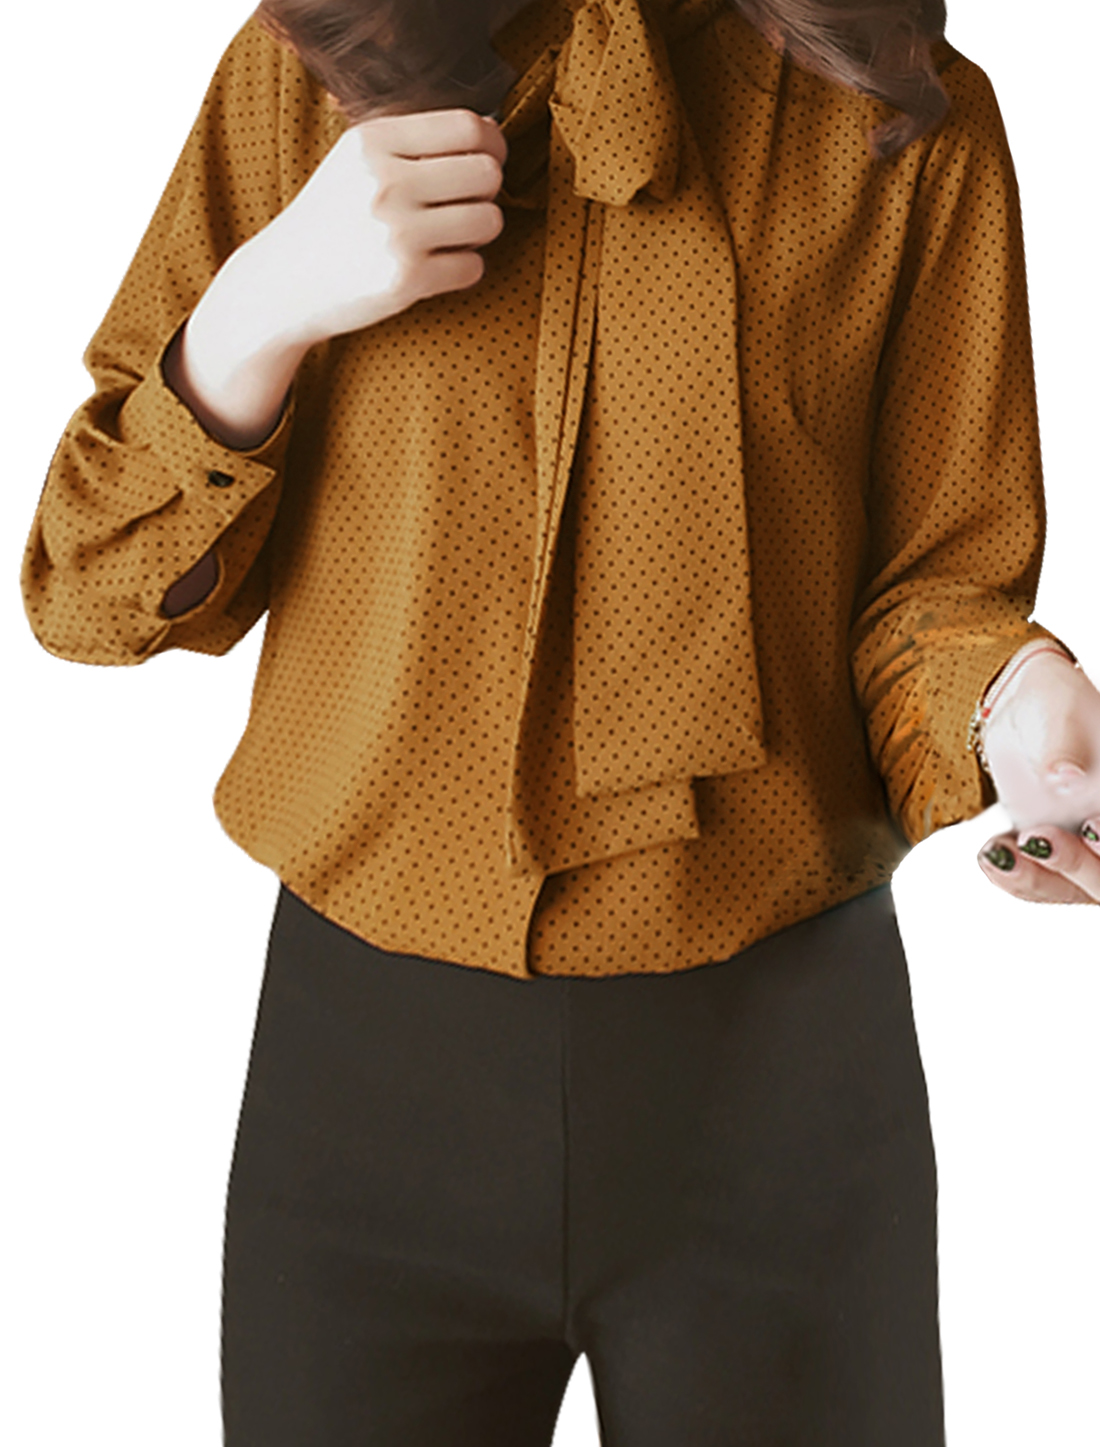 Lady Stand Collar Self Tie Design Long Sleeves Dots Shirts Brown XS